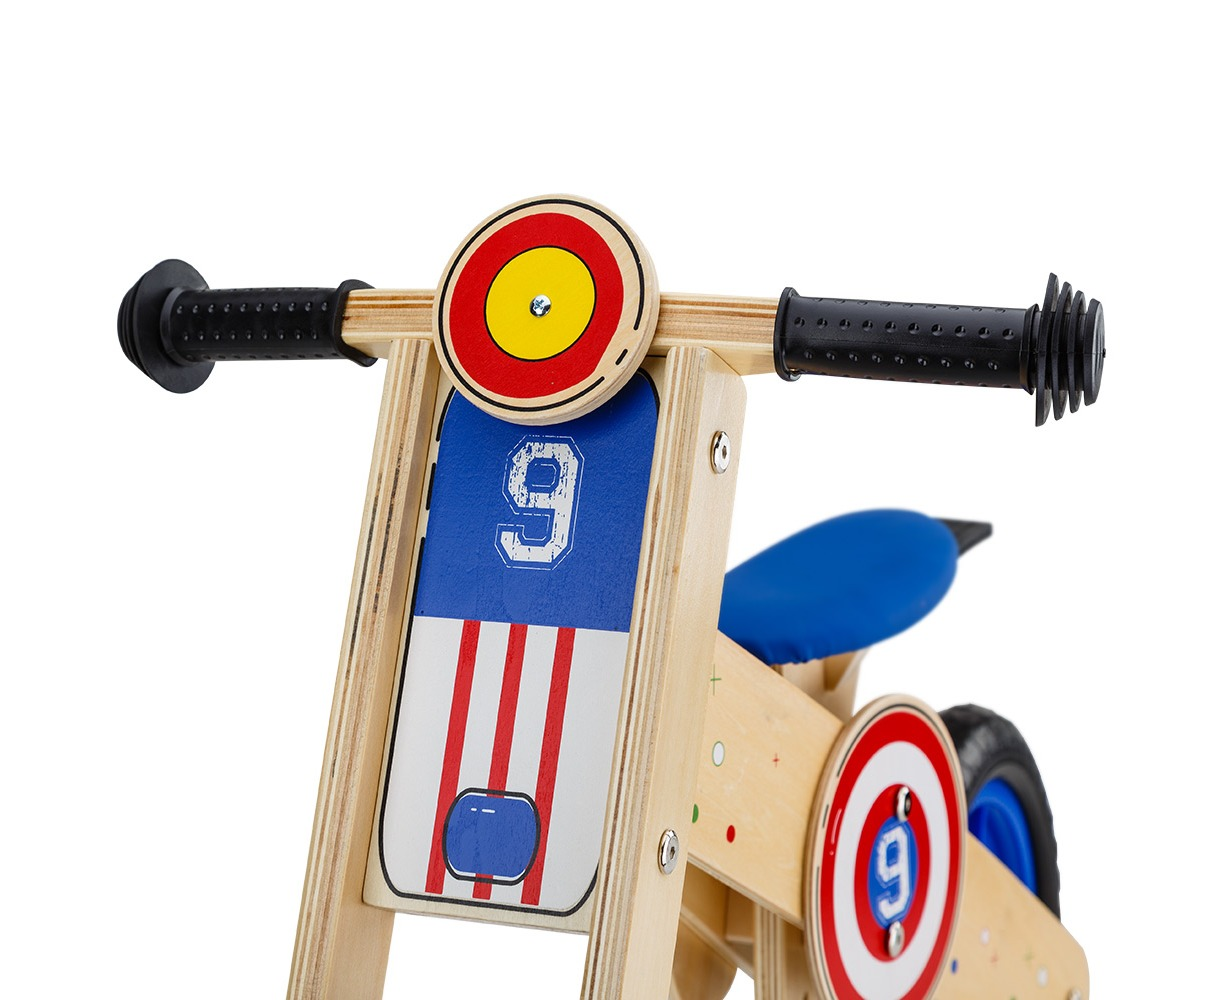 4f06321c008 ROVO KIDS Wooden Kids Balance Bike Ride On Toy Push Bicycle Trainer Outdoor  | Catch.com.au